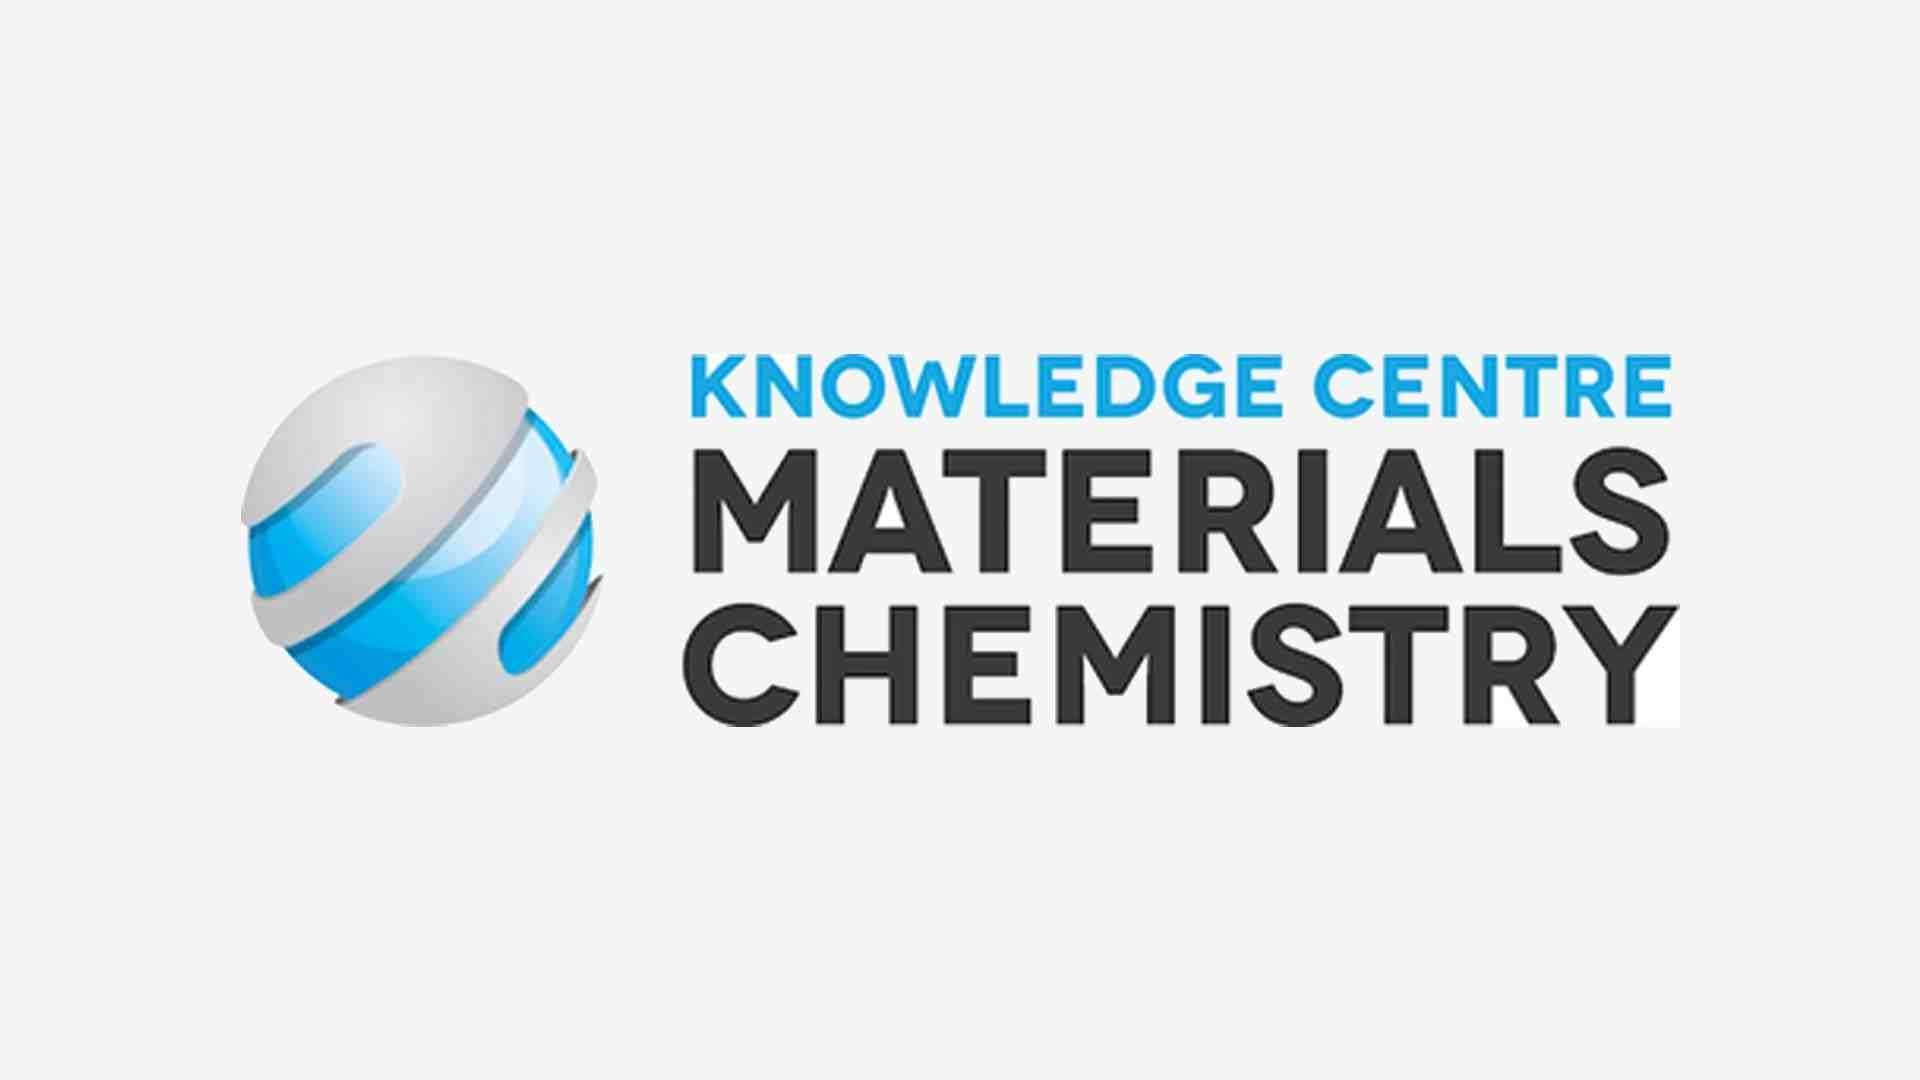 Knowledge Centre Materials Chemistry